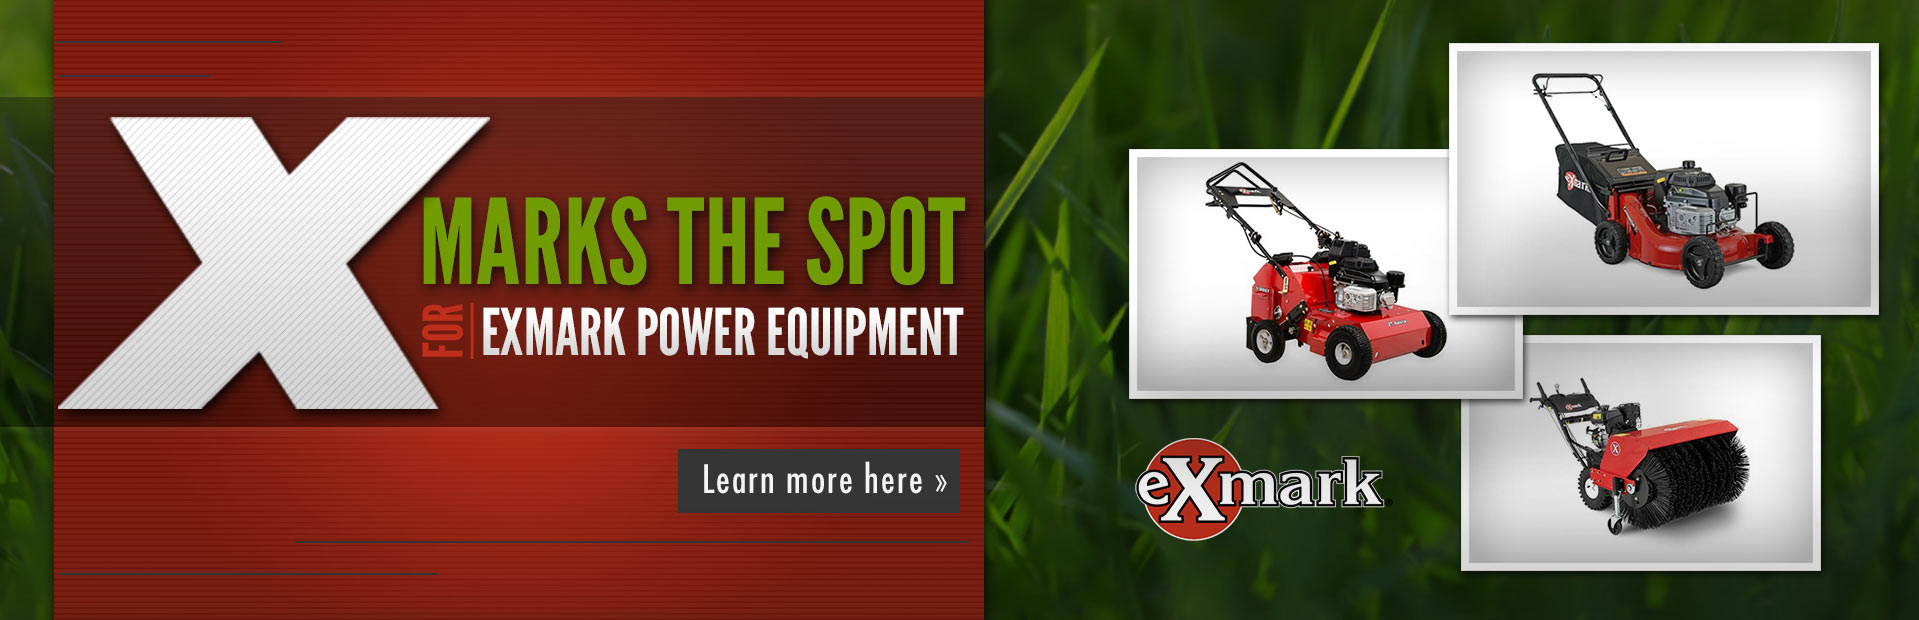 Exmark Power Equipment: Click here to view the lineup.